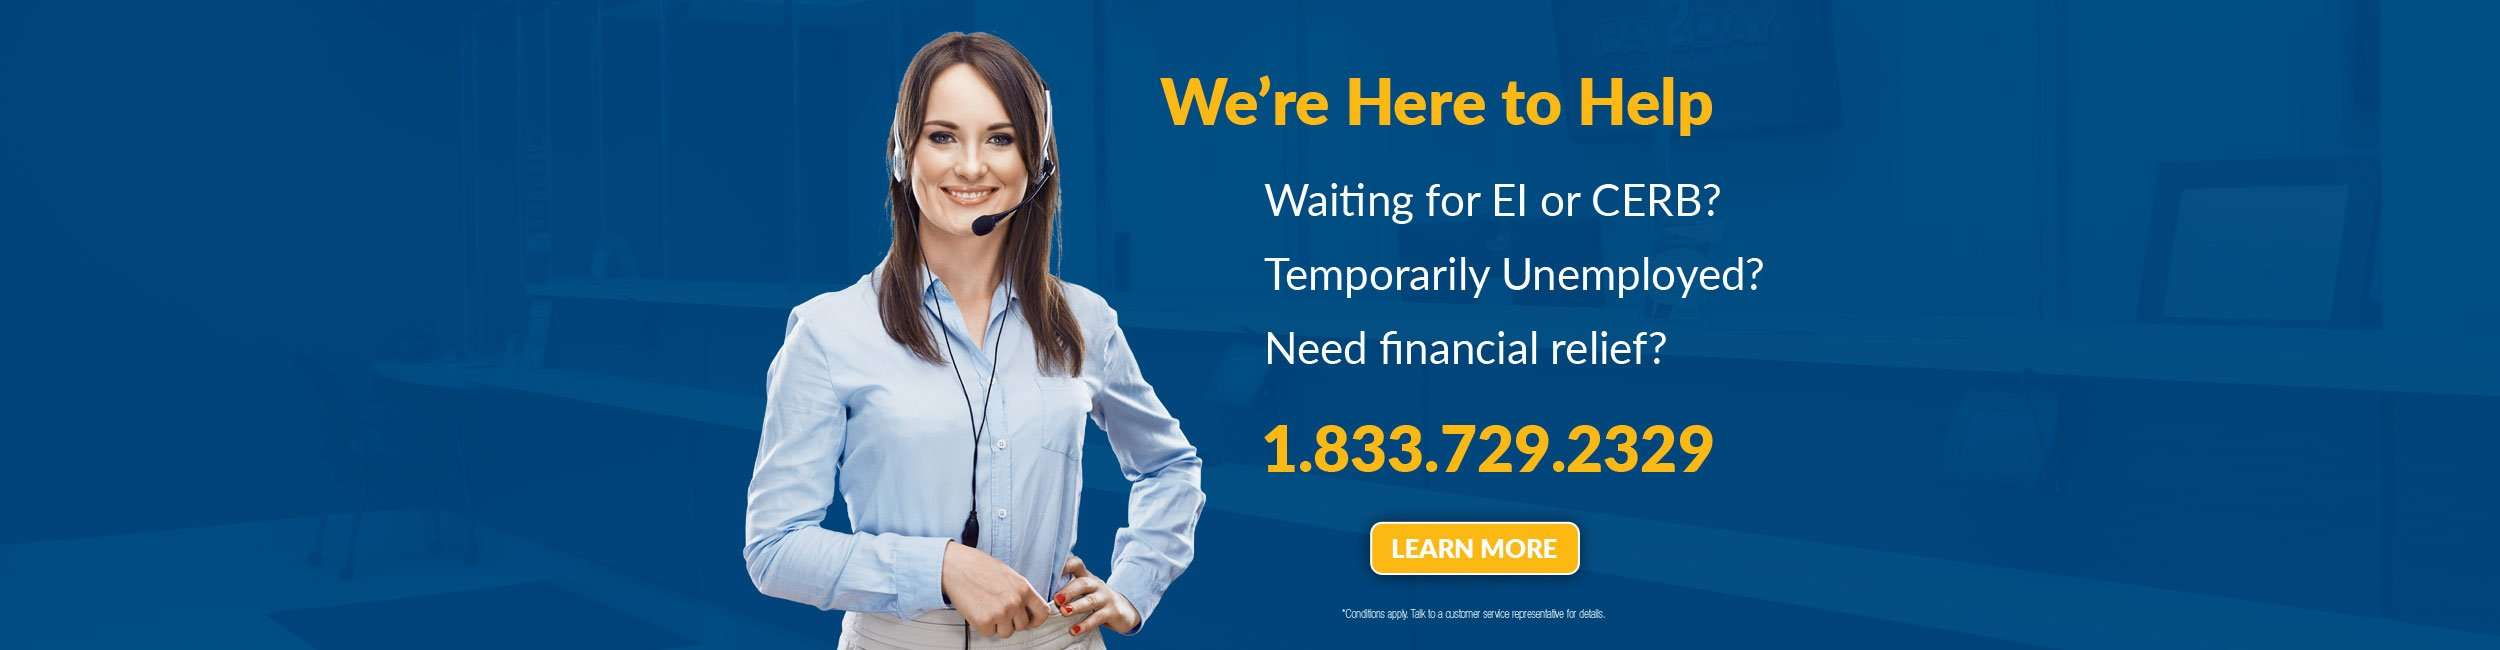 We can help. Waiting for EI or CERB? Temporarily unemployed? Need financial relief? 1.833.729.2329. Click to learn more.